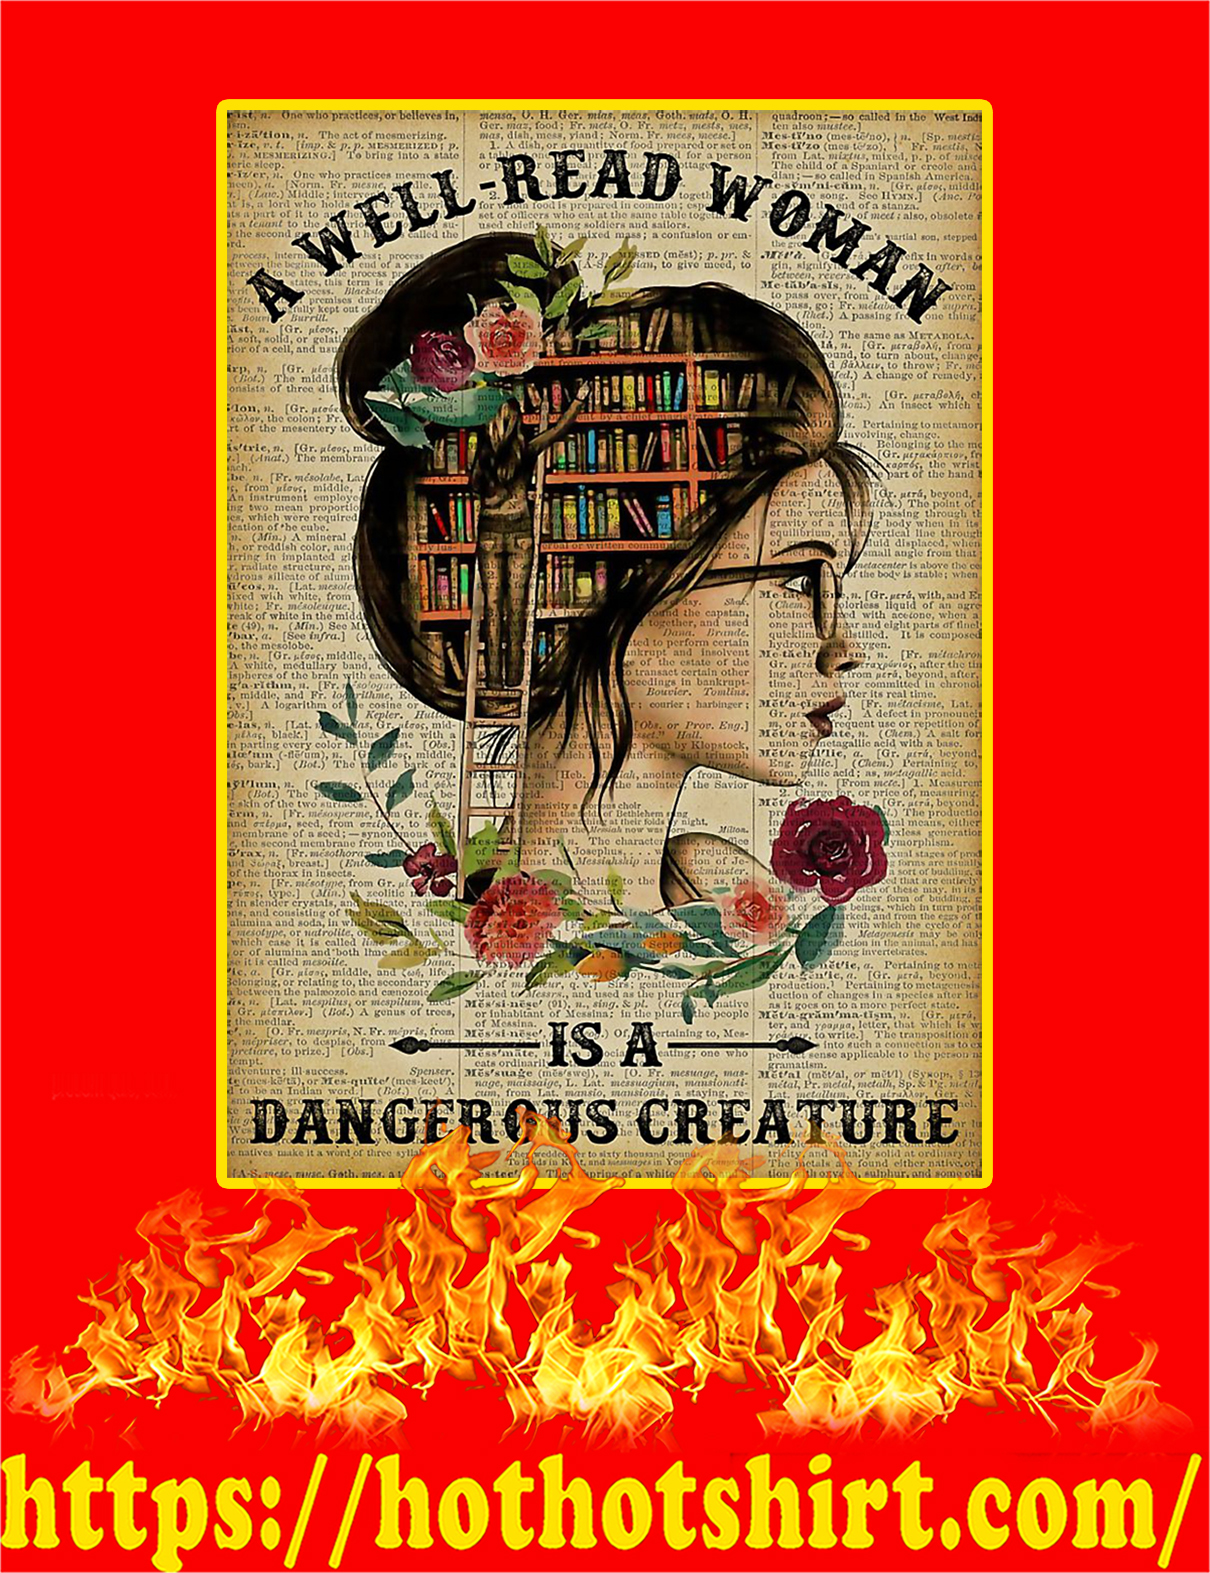 A Well Read Woman Is A Dangerous Creature Poster - A4